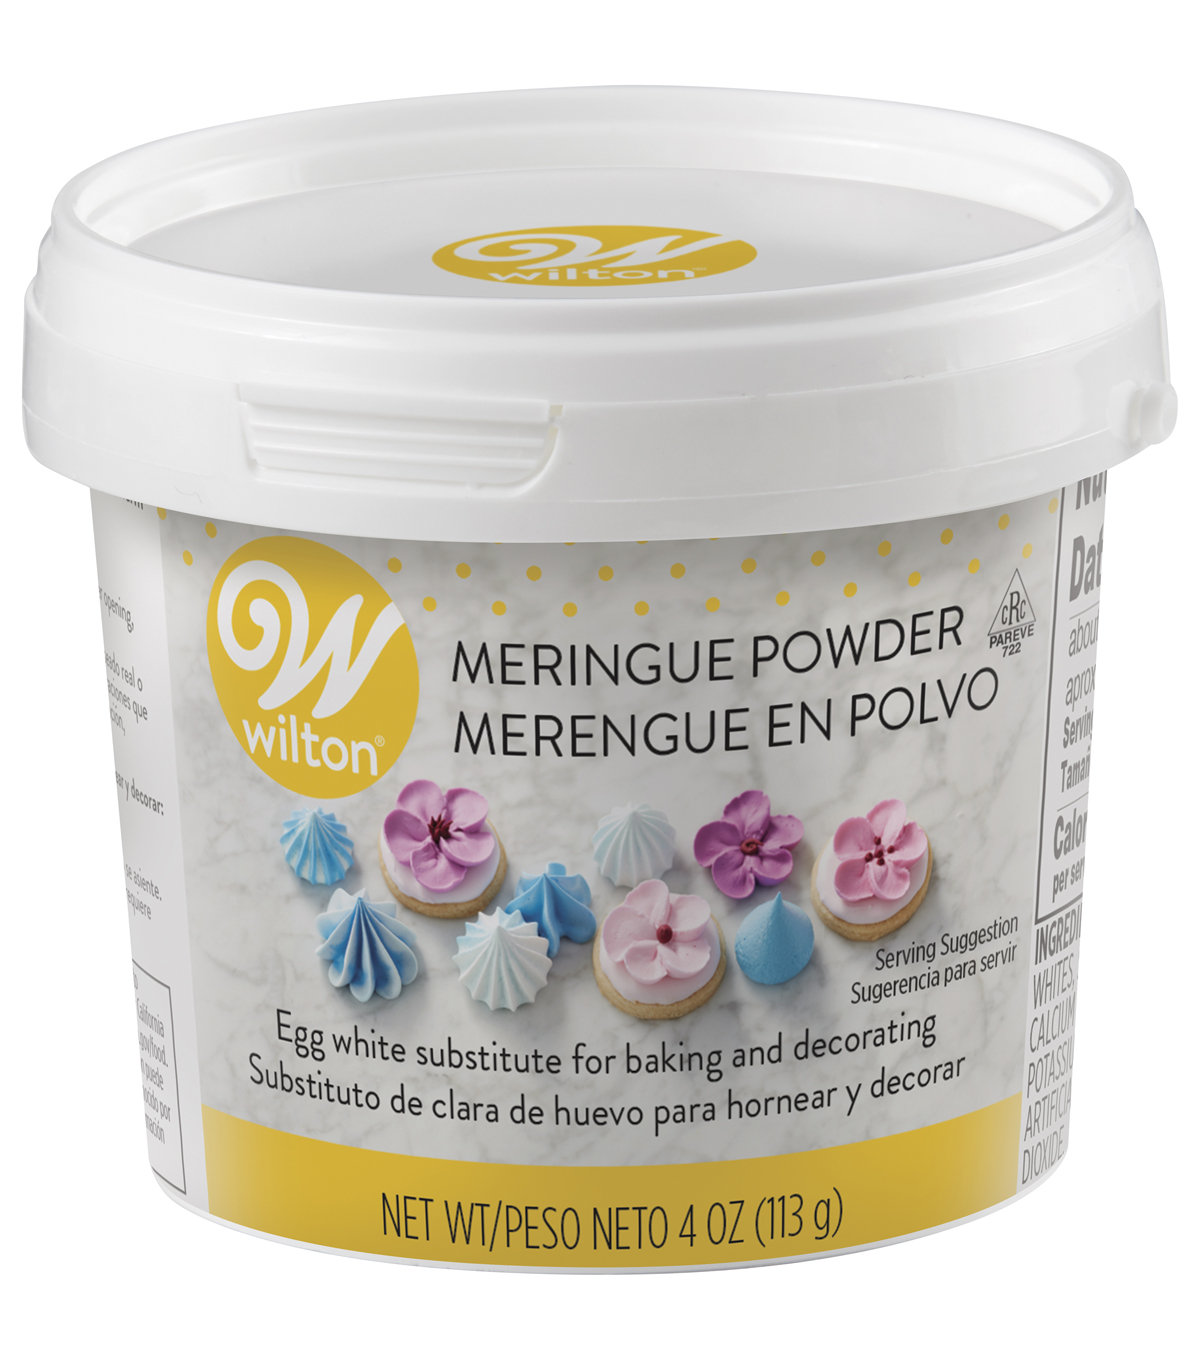 Wilton Meringue Powder 4 Oz.                      Wilton Meringue Powder 4 Oz. by Wilton